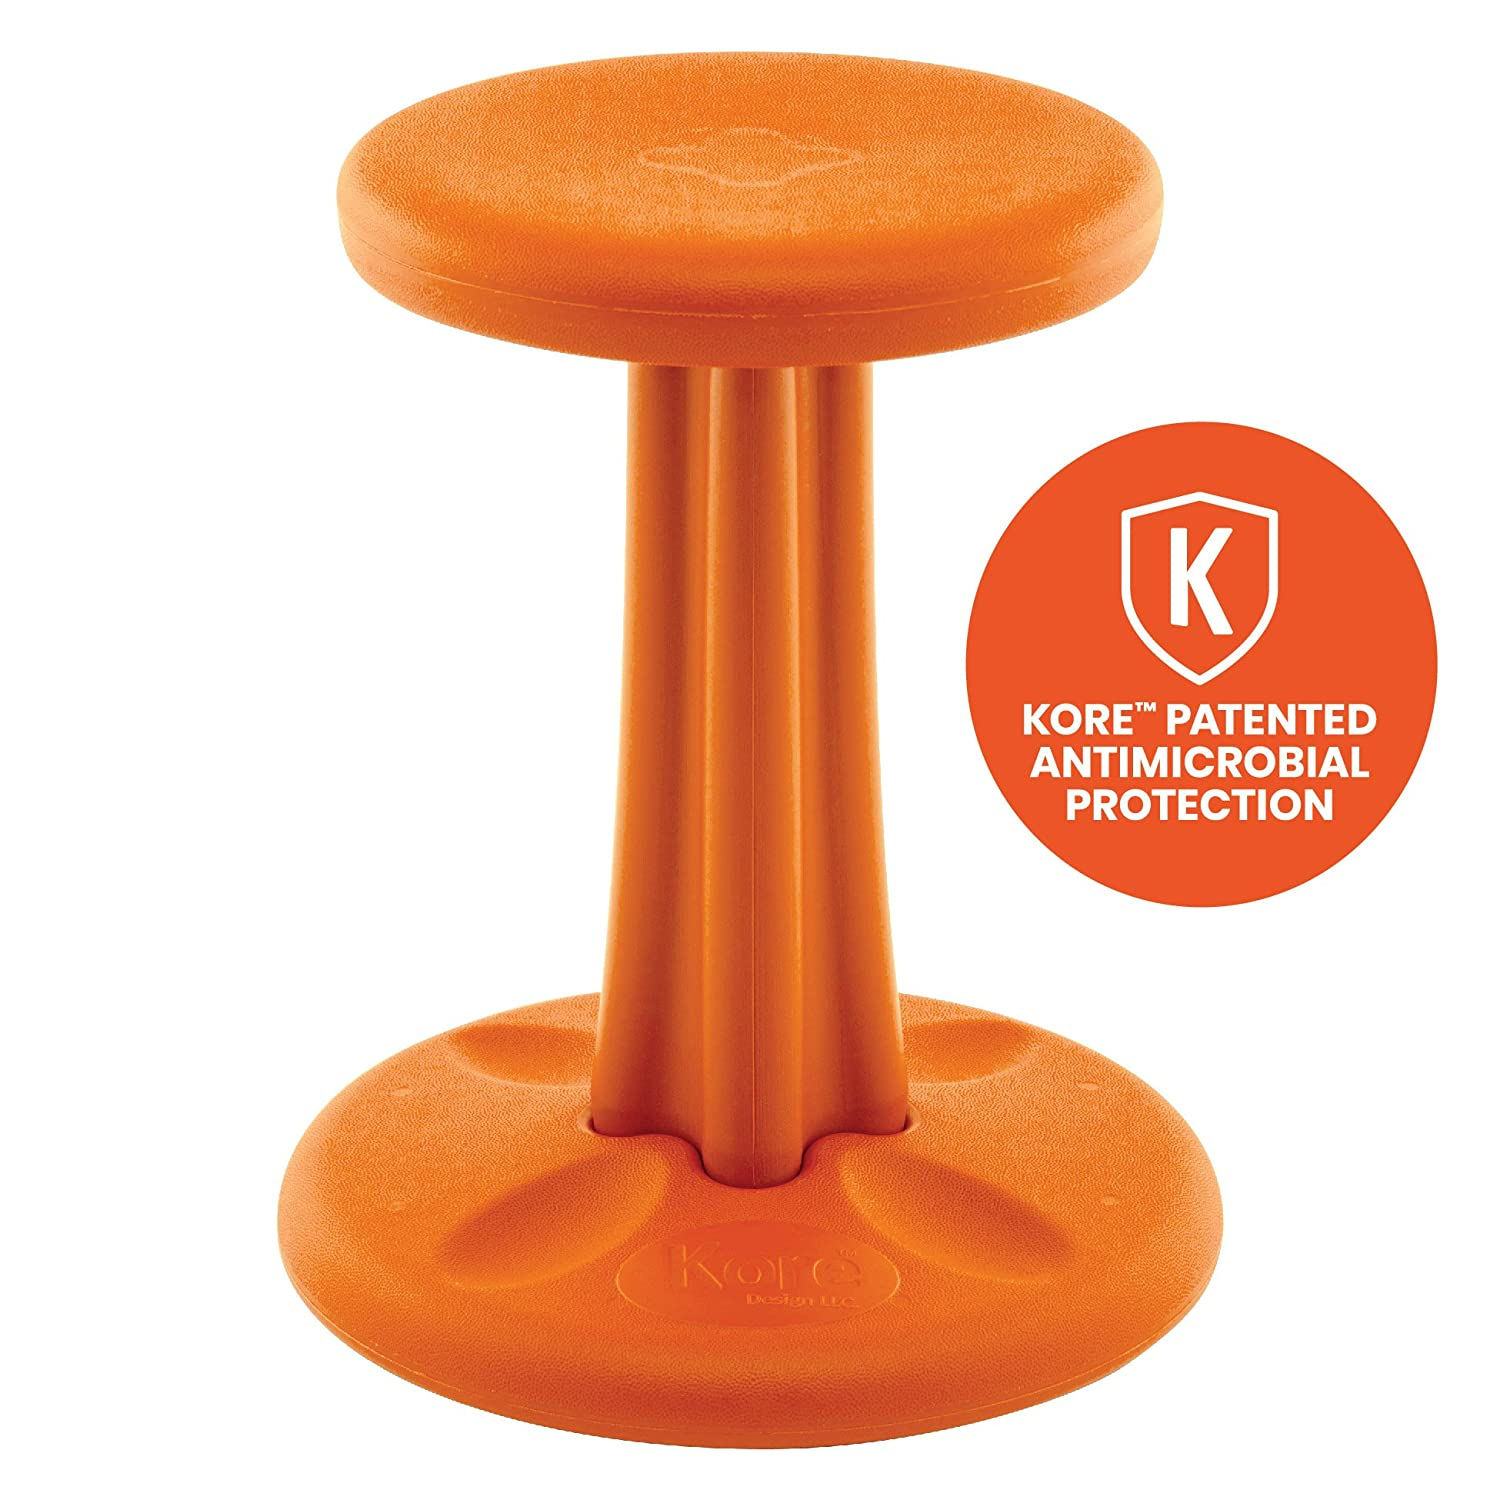 Kore patented wobble chair now with antimicrobial protection stem flexible seating made in the usa active sitting for kids junior orange 16in